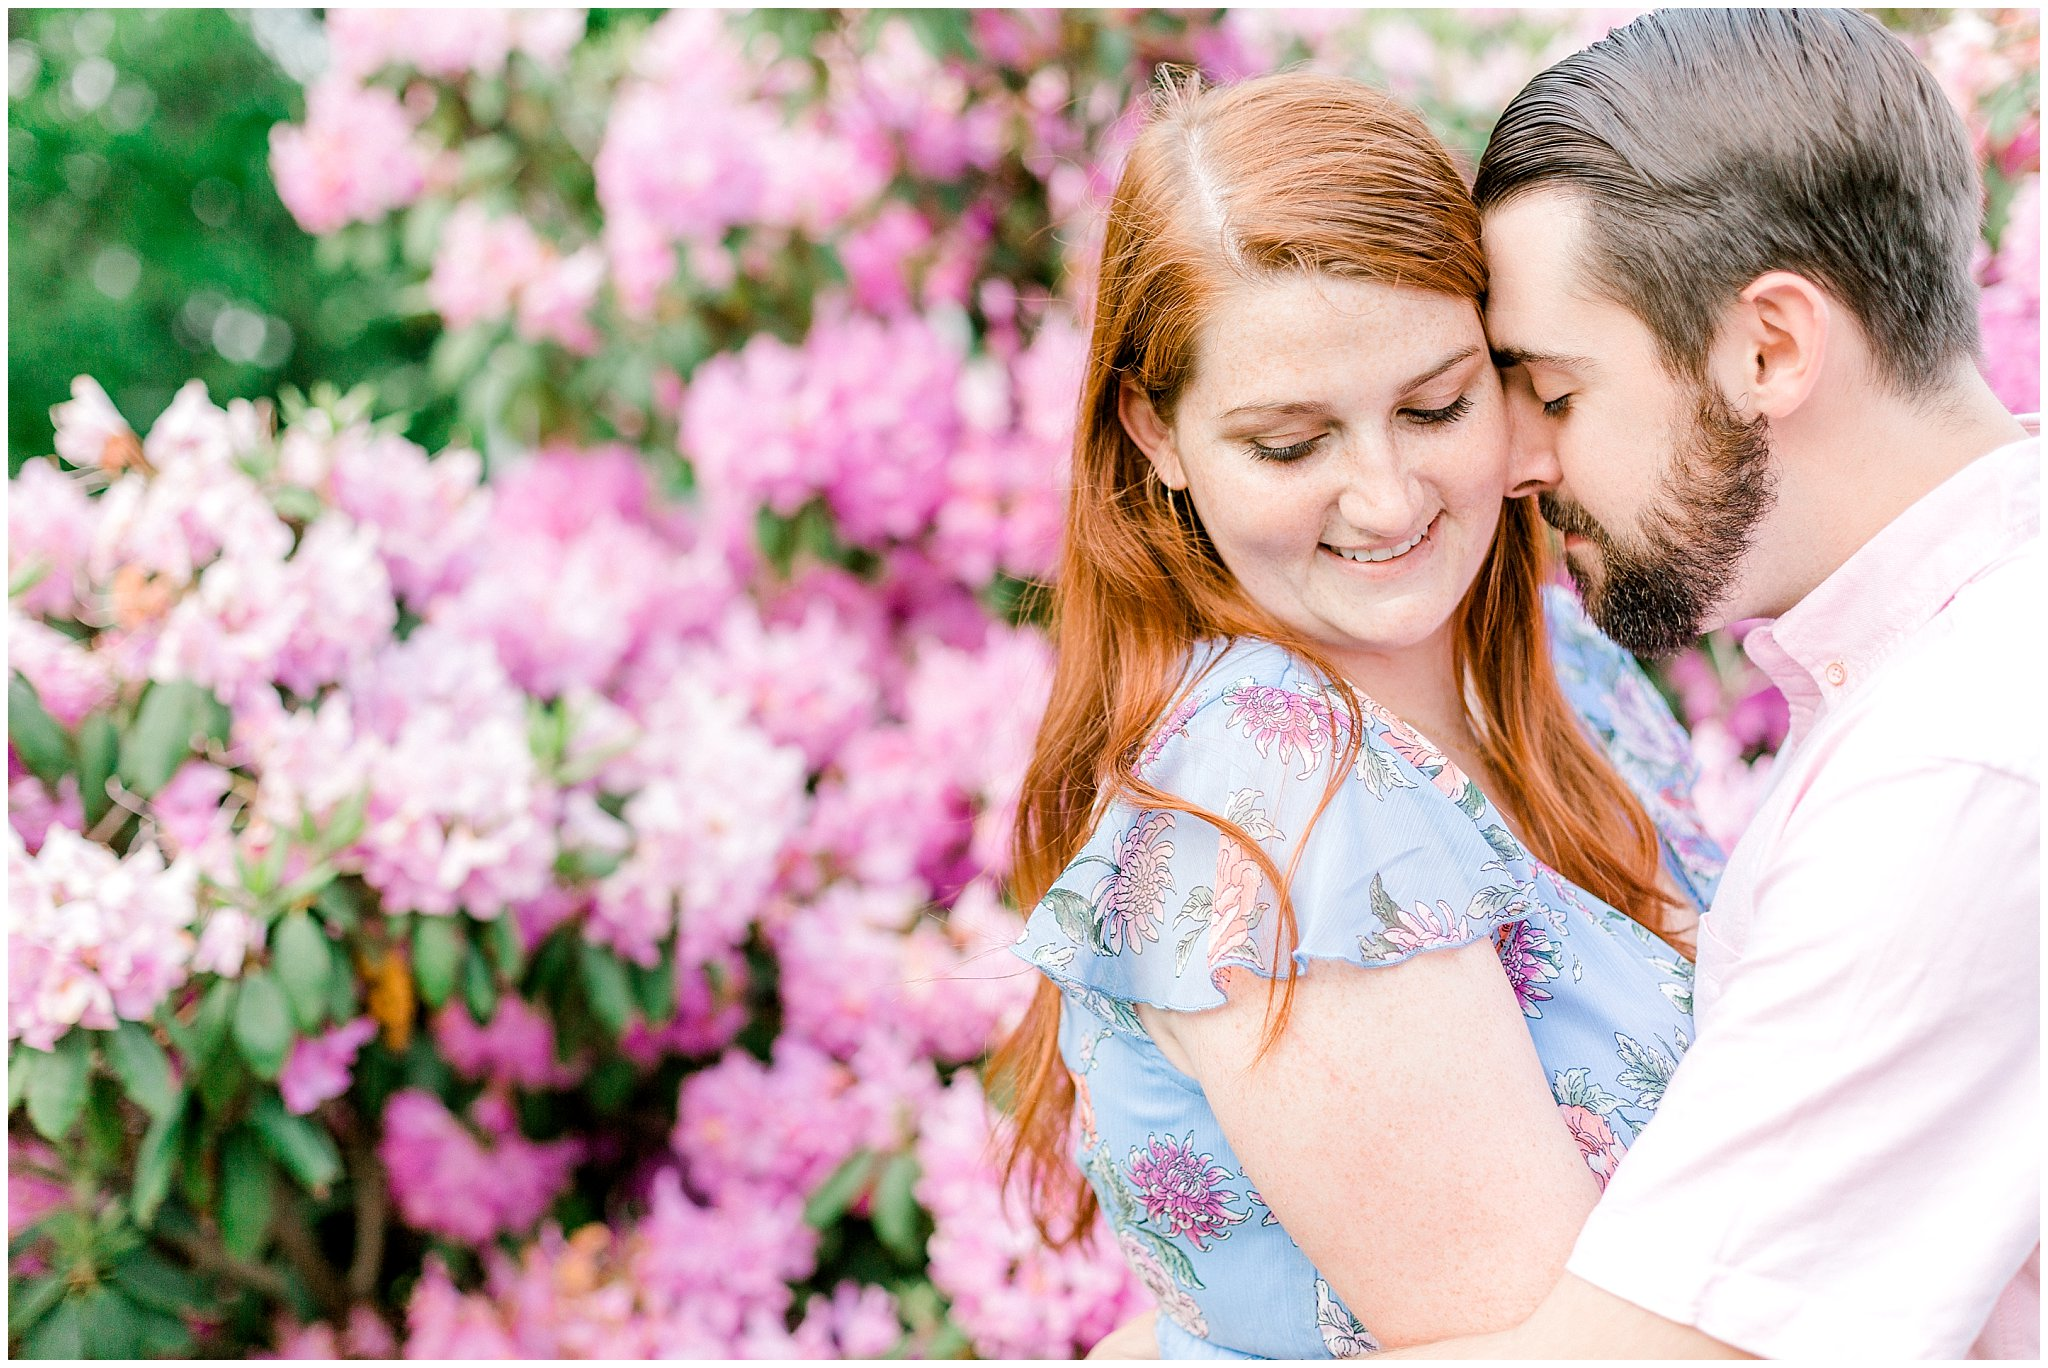 Manor house at prophecy Creek Blue Bell PA wedding venue summertime field engagement session lehigh valley based wedding and lifestyle photographe_0014.jpg